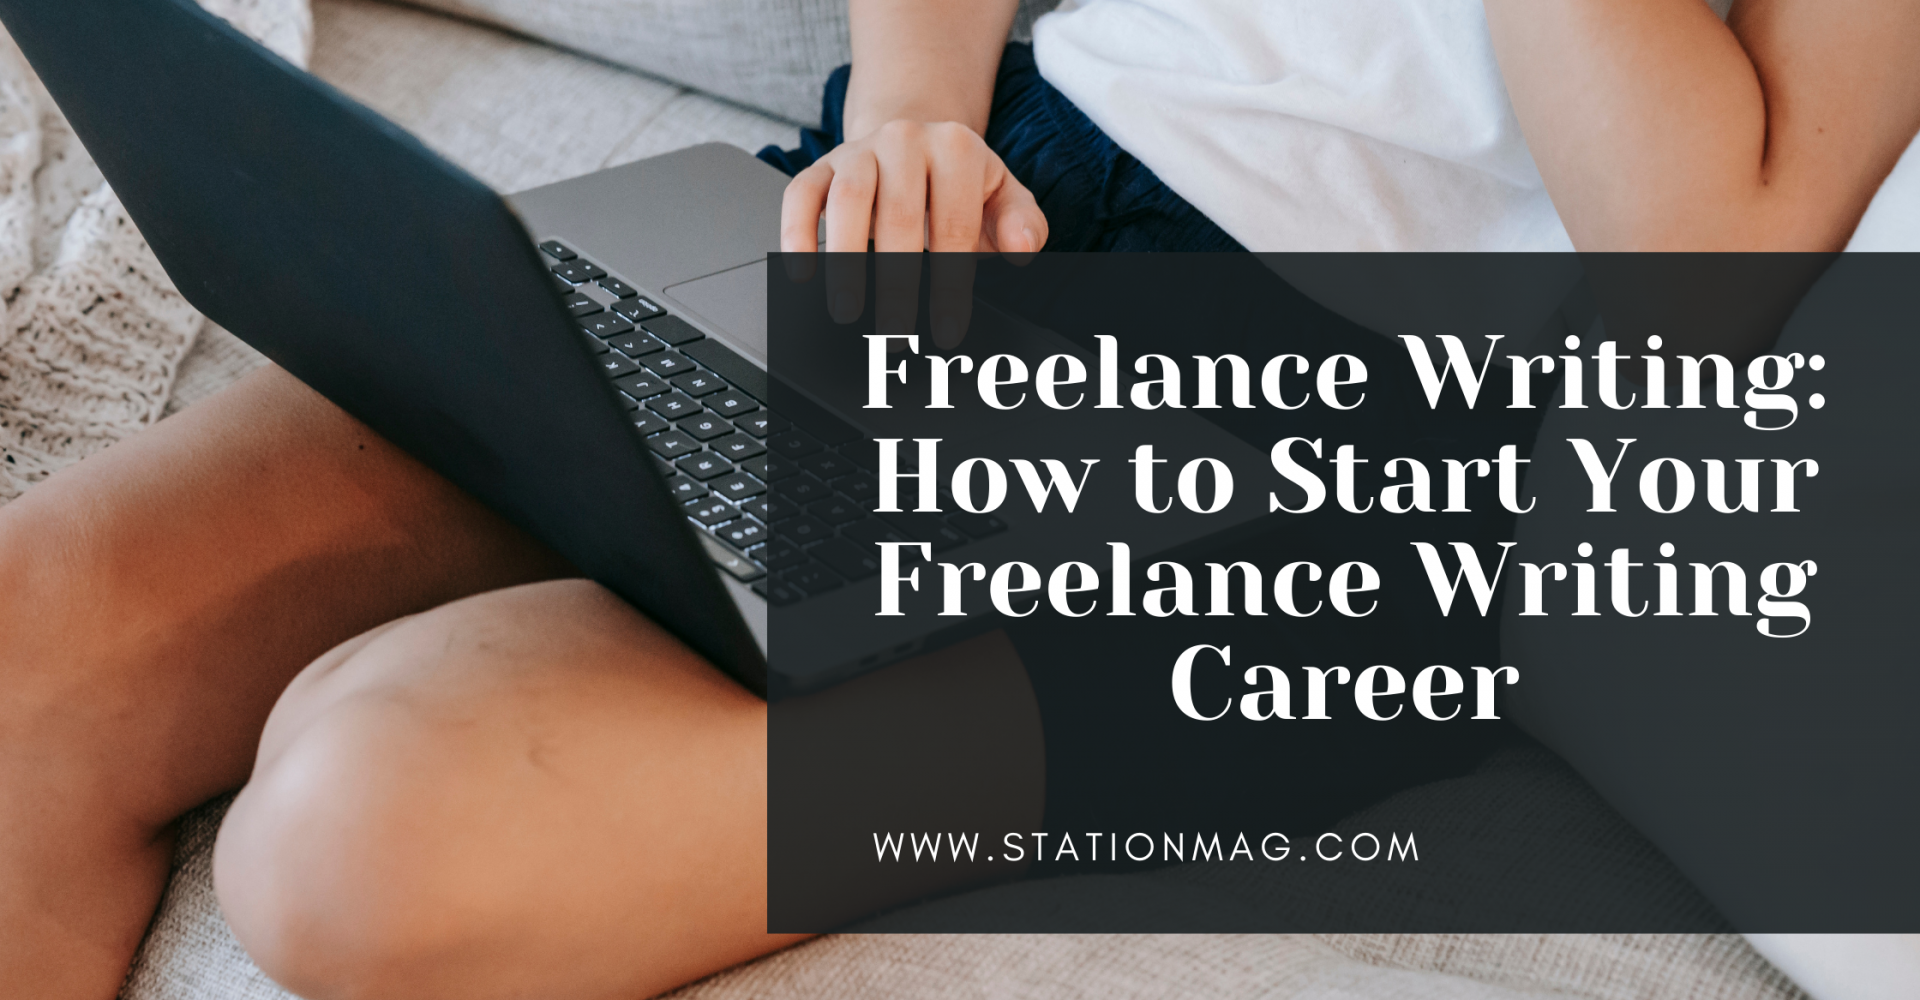 Freelance Writing: How to get started Your Freelance Writing Journey